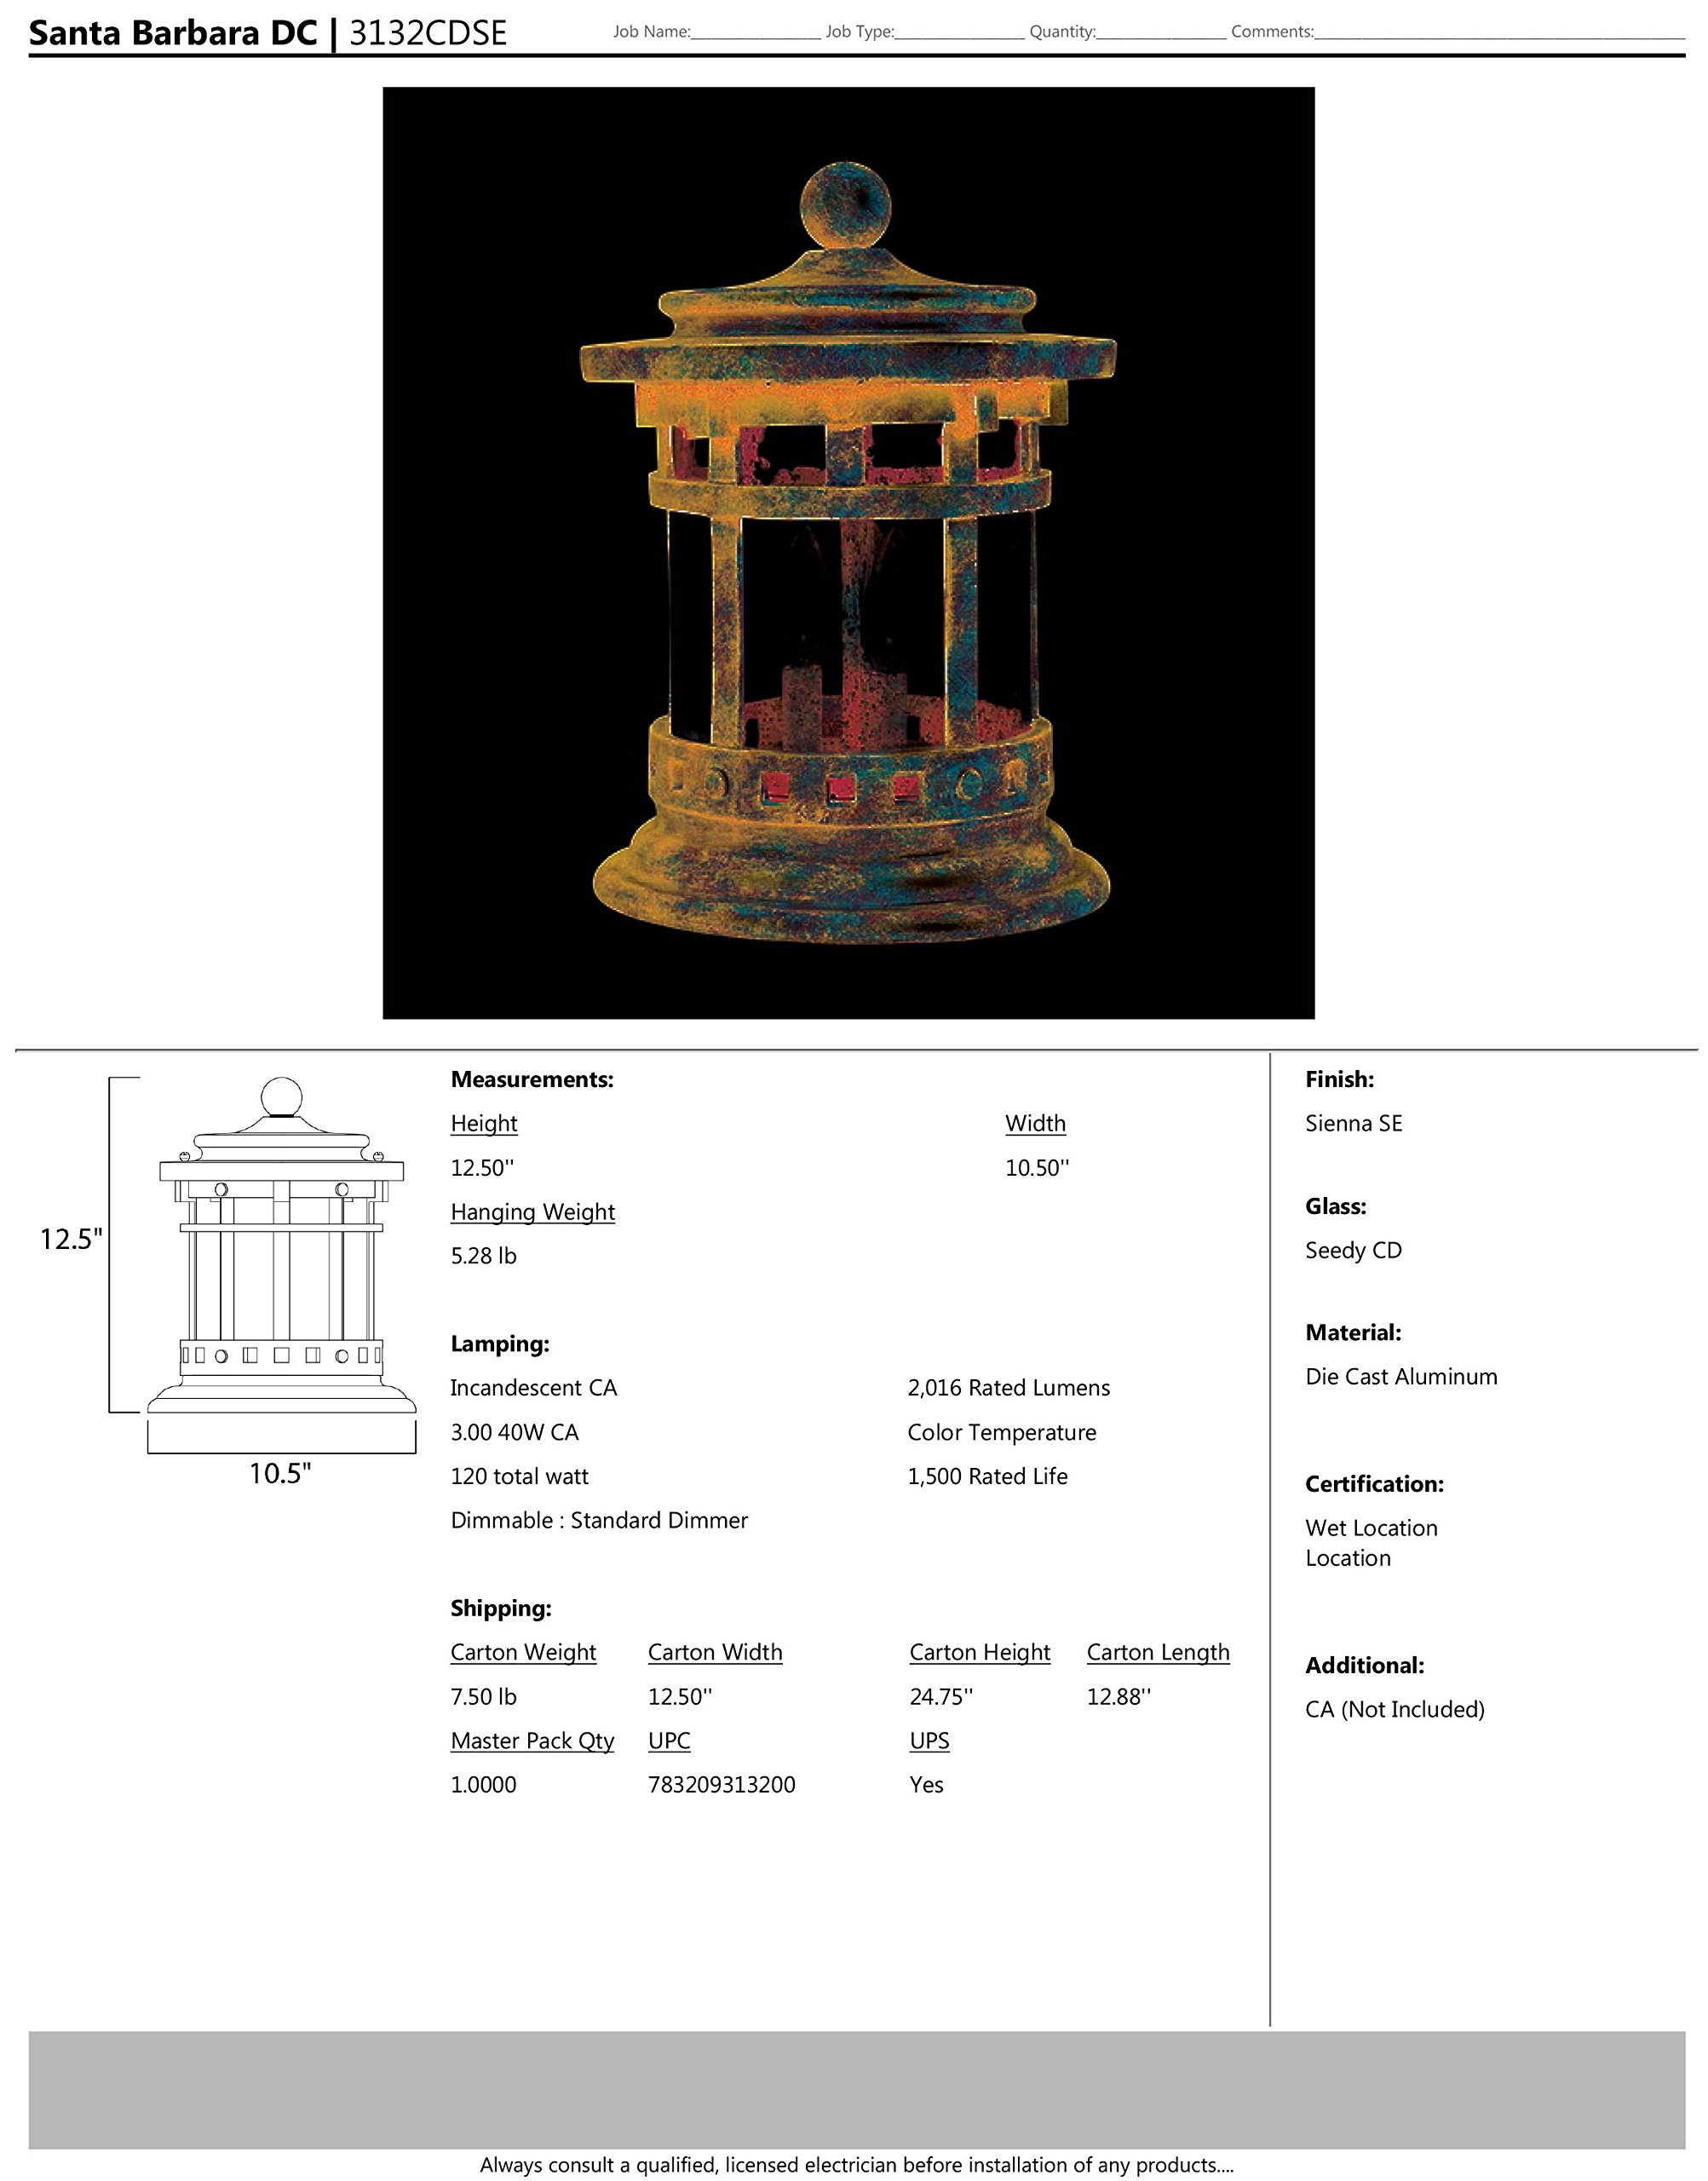 Maxim 3132CDSE Santa Barbara Cast 3-Light Outdoor Deck Lantern, Sienna Finish, Seedy Glass, CA Incandescent Incandescent Bulb , 60W Max., Damp Safety Rating, Standard Dimmable, Frosted Glass Shade Material, Rated Lumens by Maxim Lighting (Image #2)